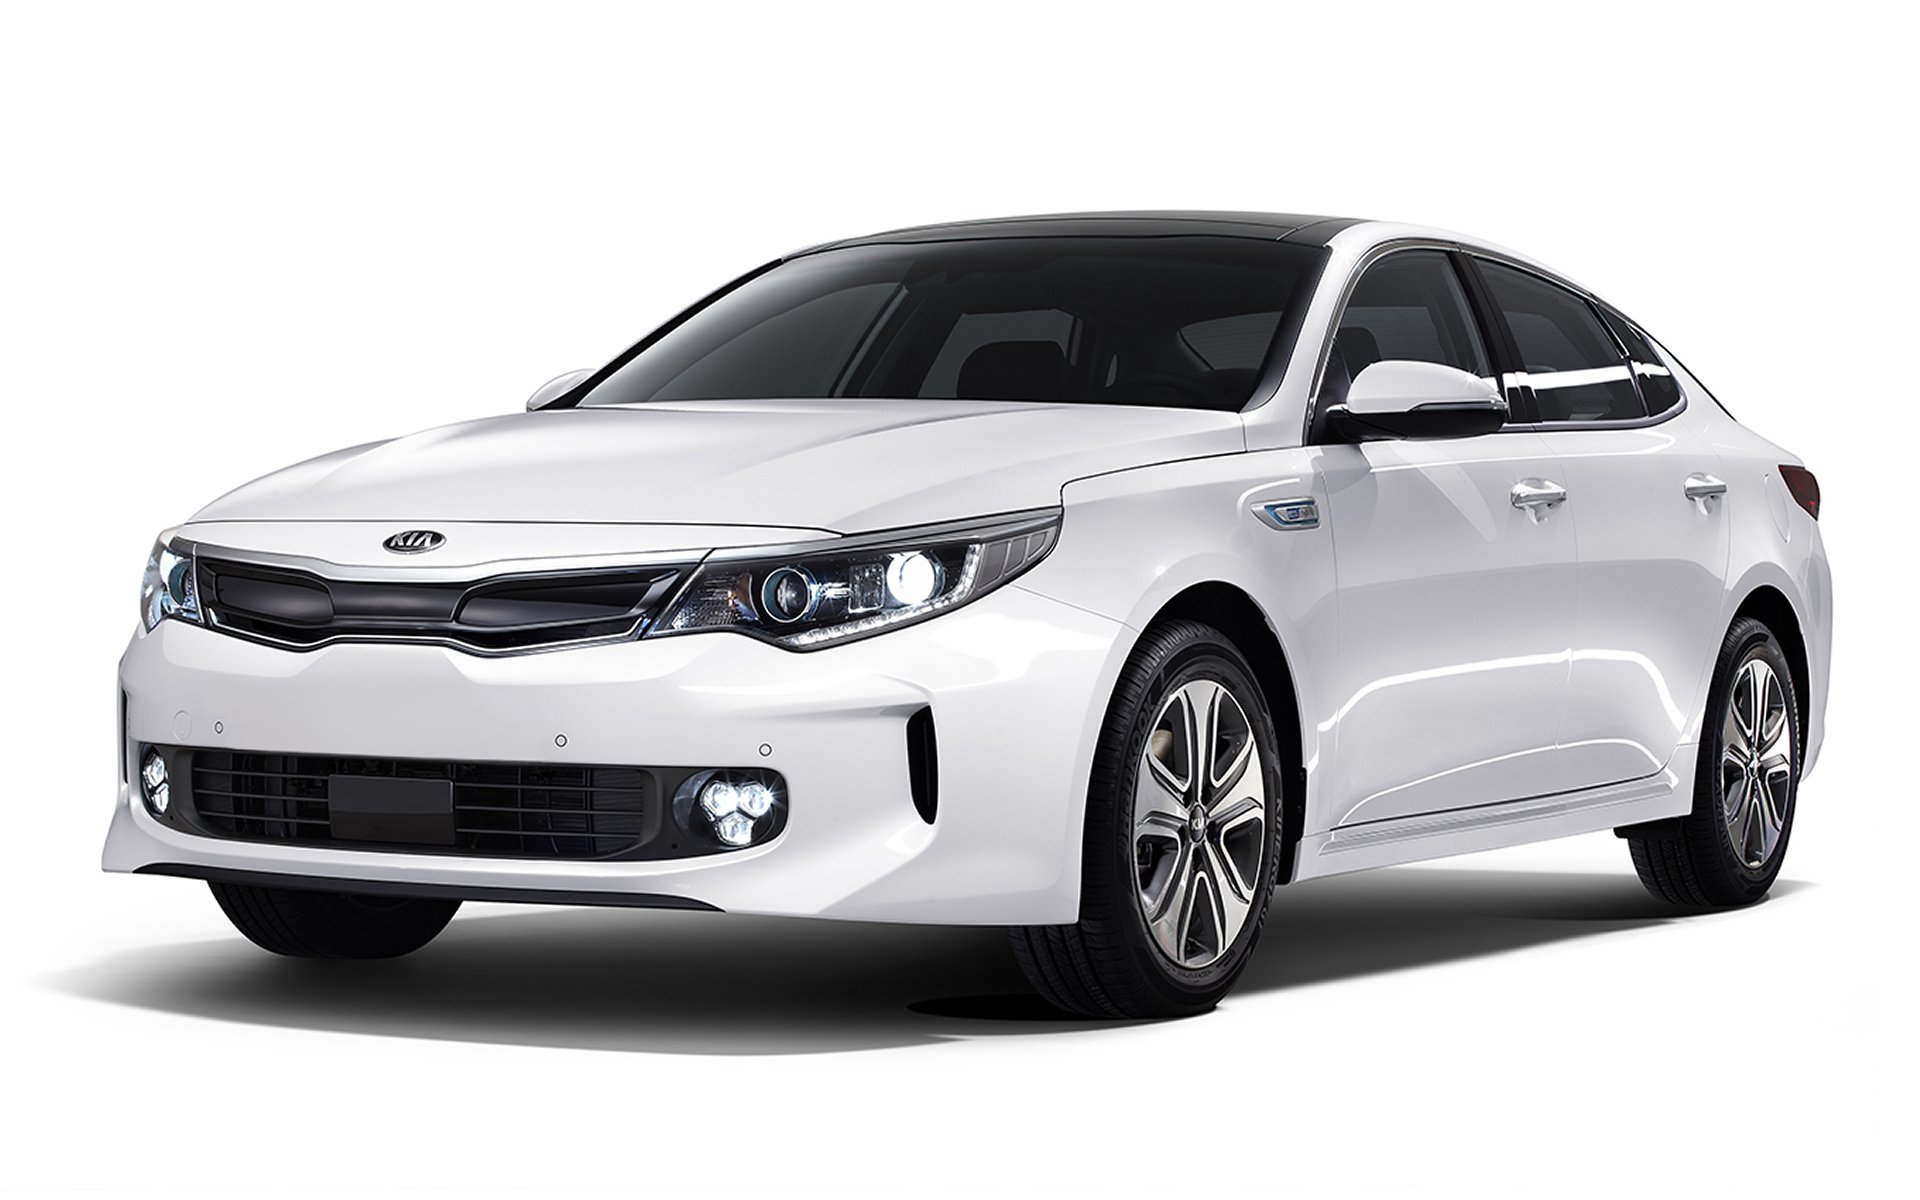 2017 Kia Optima Exterior Front White